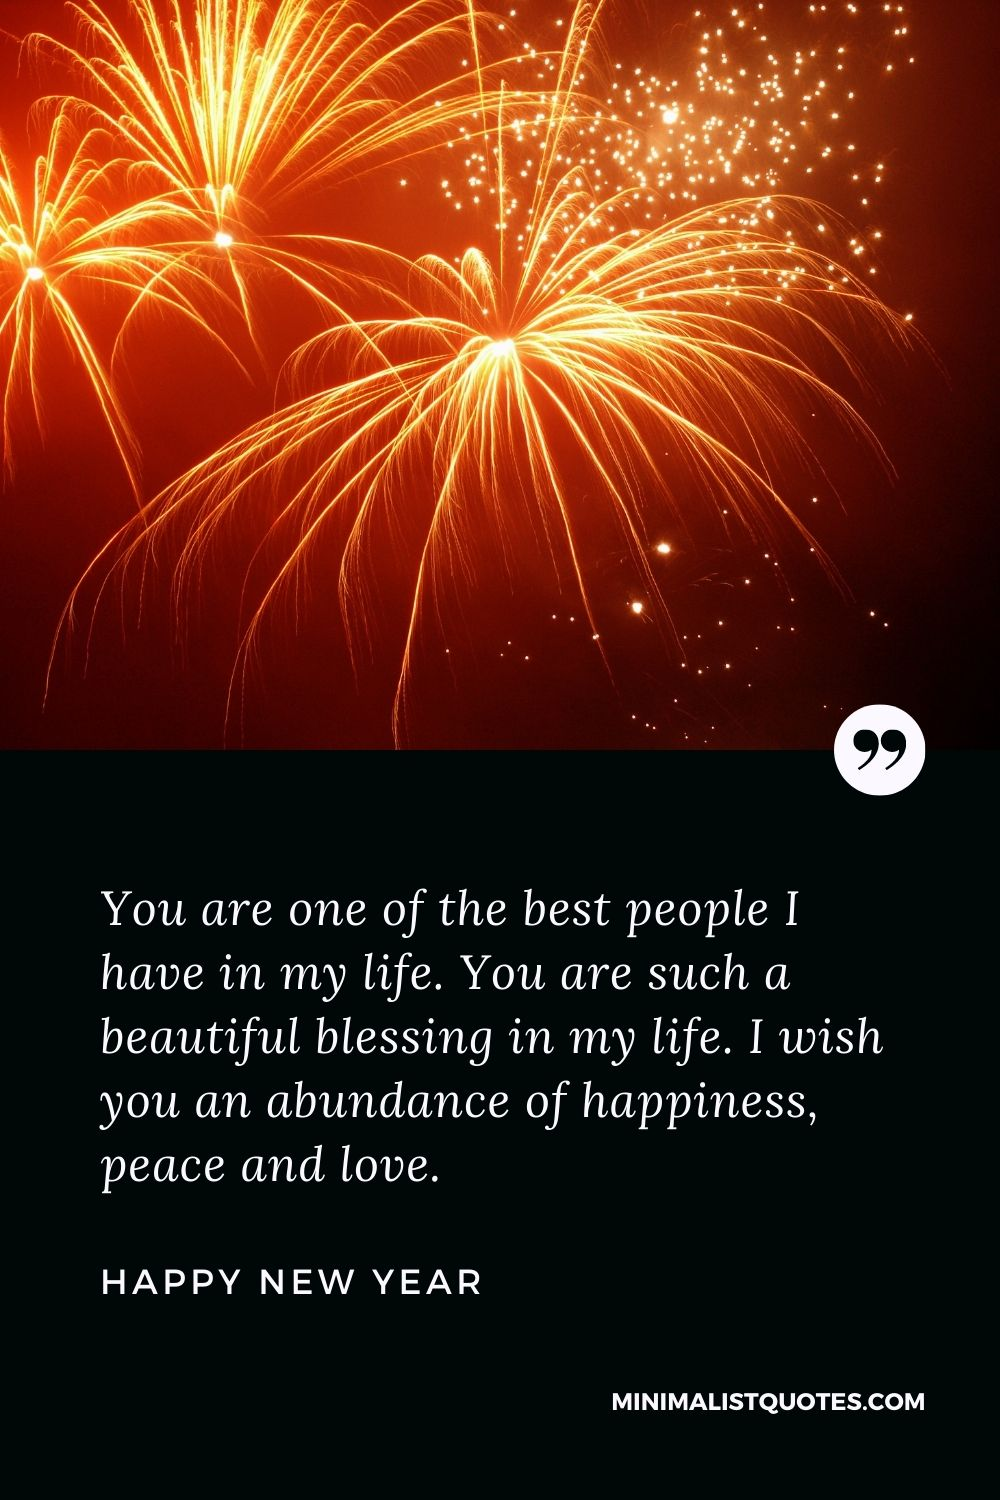 New Year Wish -You are one of the best people I have in my life. You are such a beautiful blessingin my life. I wish you an abundance of happiness, peace and love.